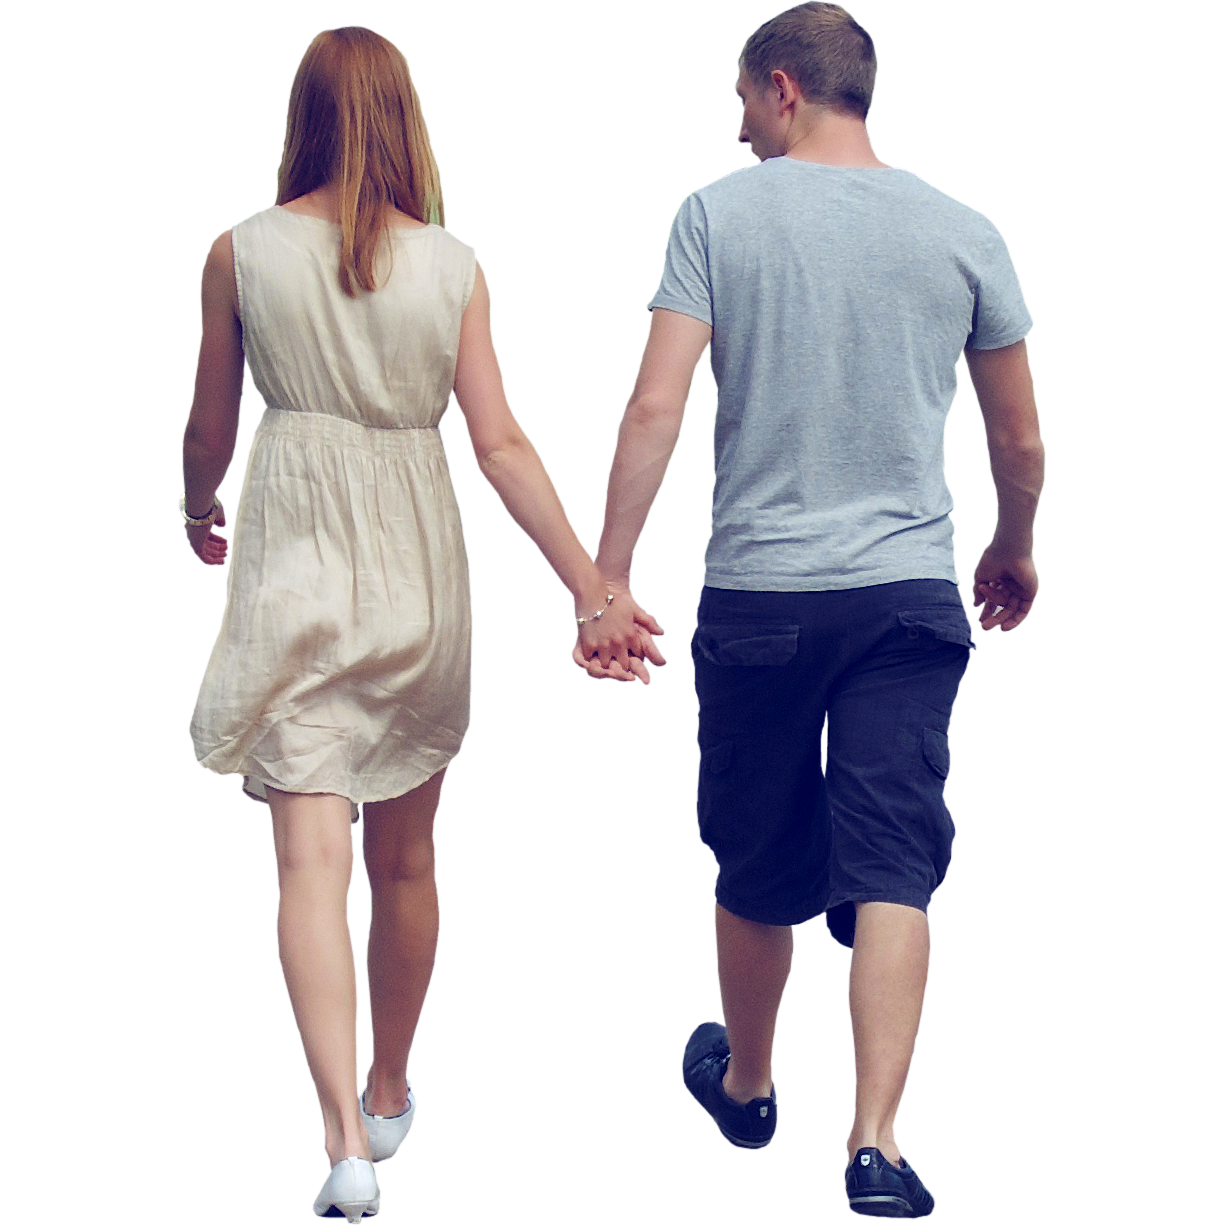 Couple Transparent PNG Image